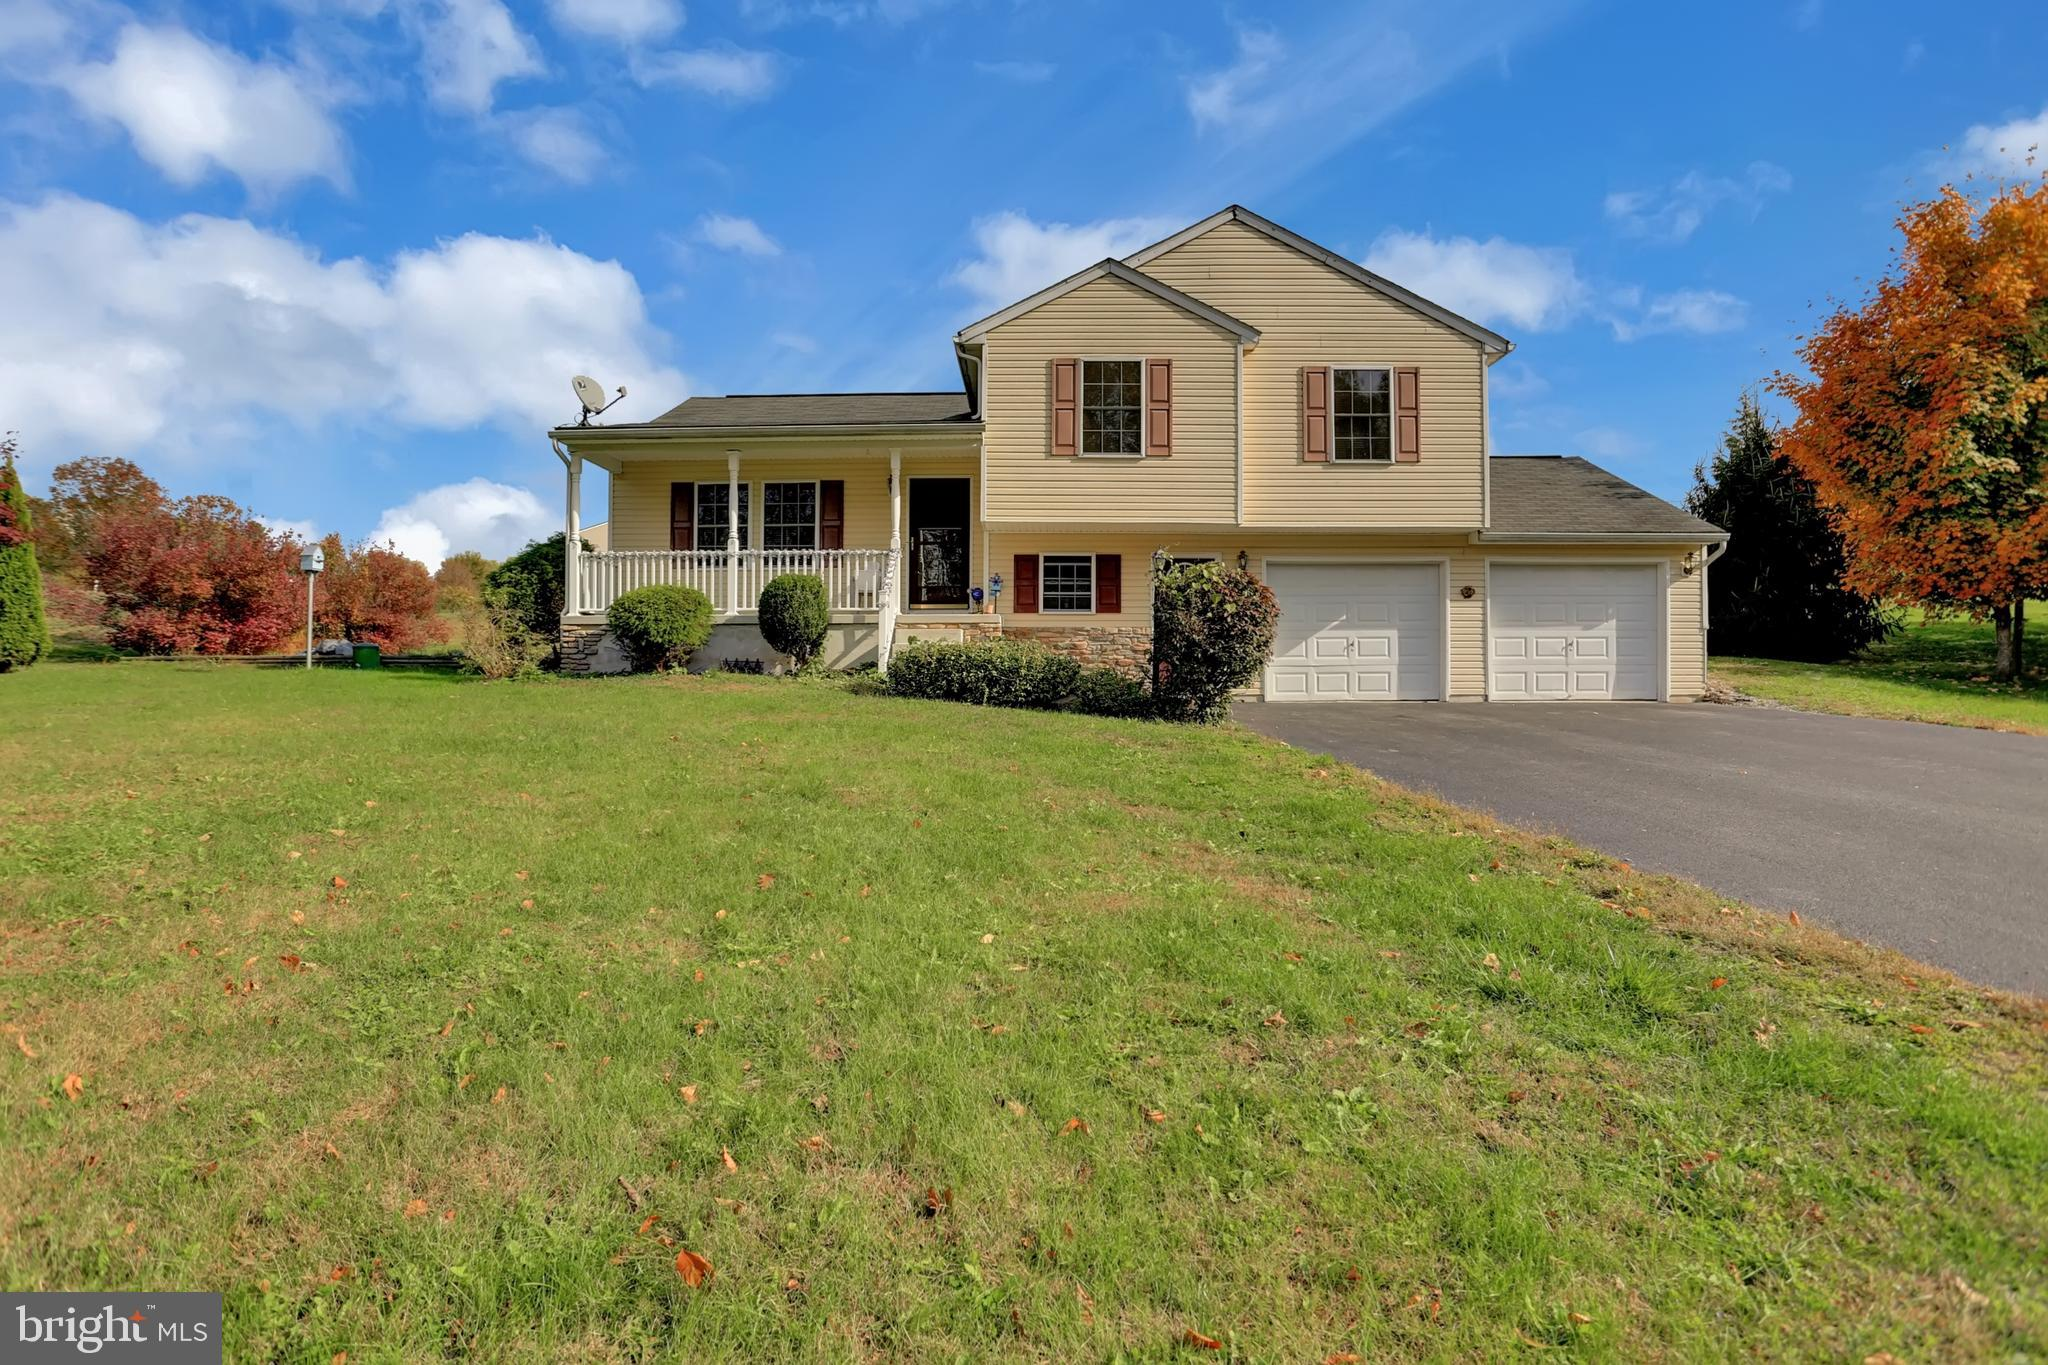 15 P AND Q ROAD, BIGLERVILLE, PA 17307